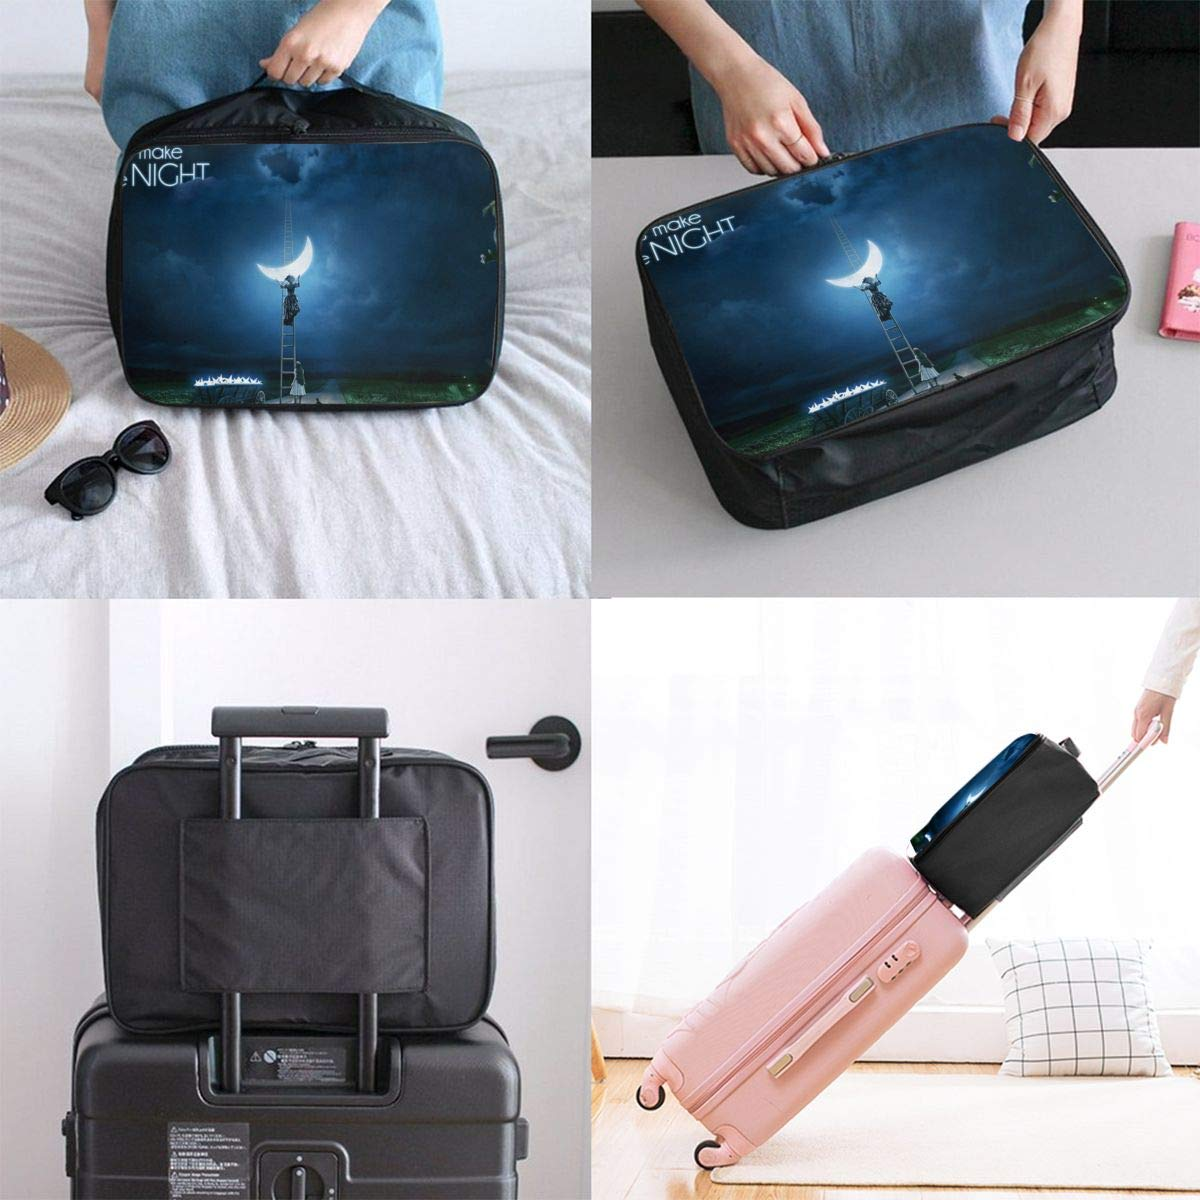 Lets Make The Night Travel Lightweight Waterproof Folding Storage Carry Luggage Duffle Tote Bag Large Capacity In Trolley Handle Bags 6x11x15 Inch